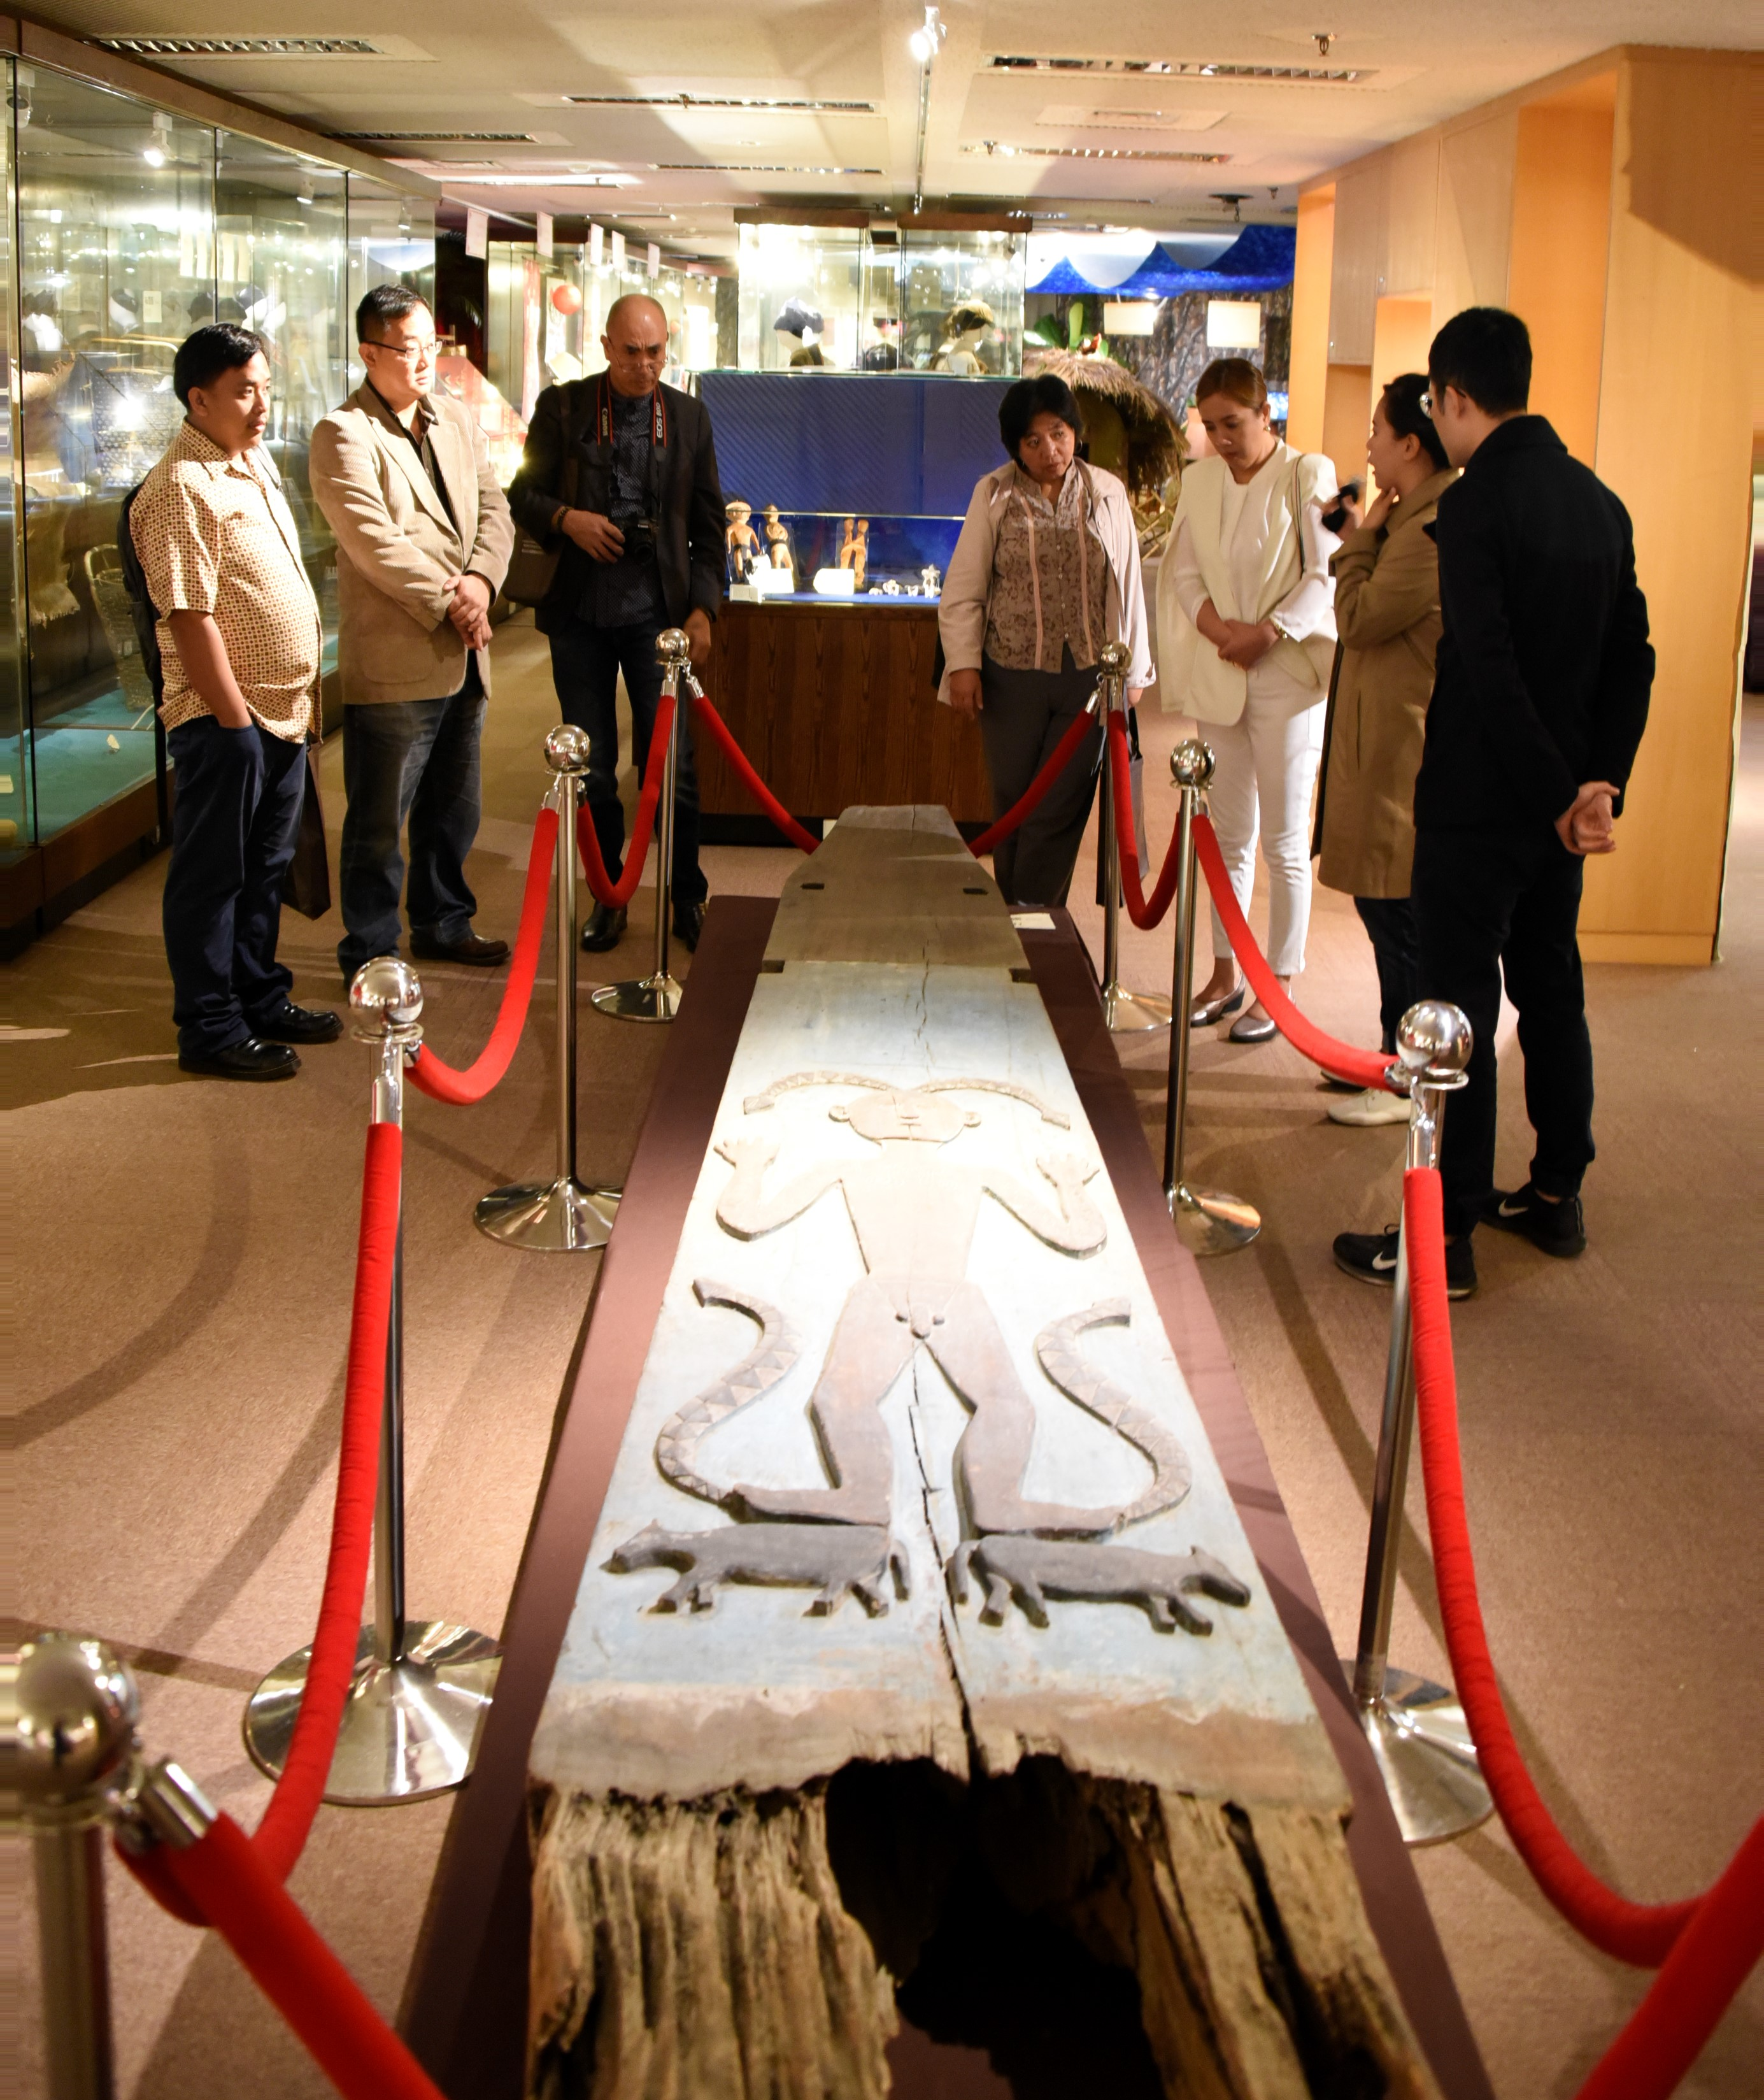 In the ethnology museum, IFSU President and scholars were admiring the holy pillar of Taiwanese indigenous people.